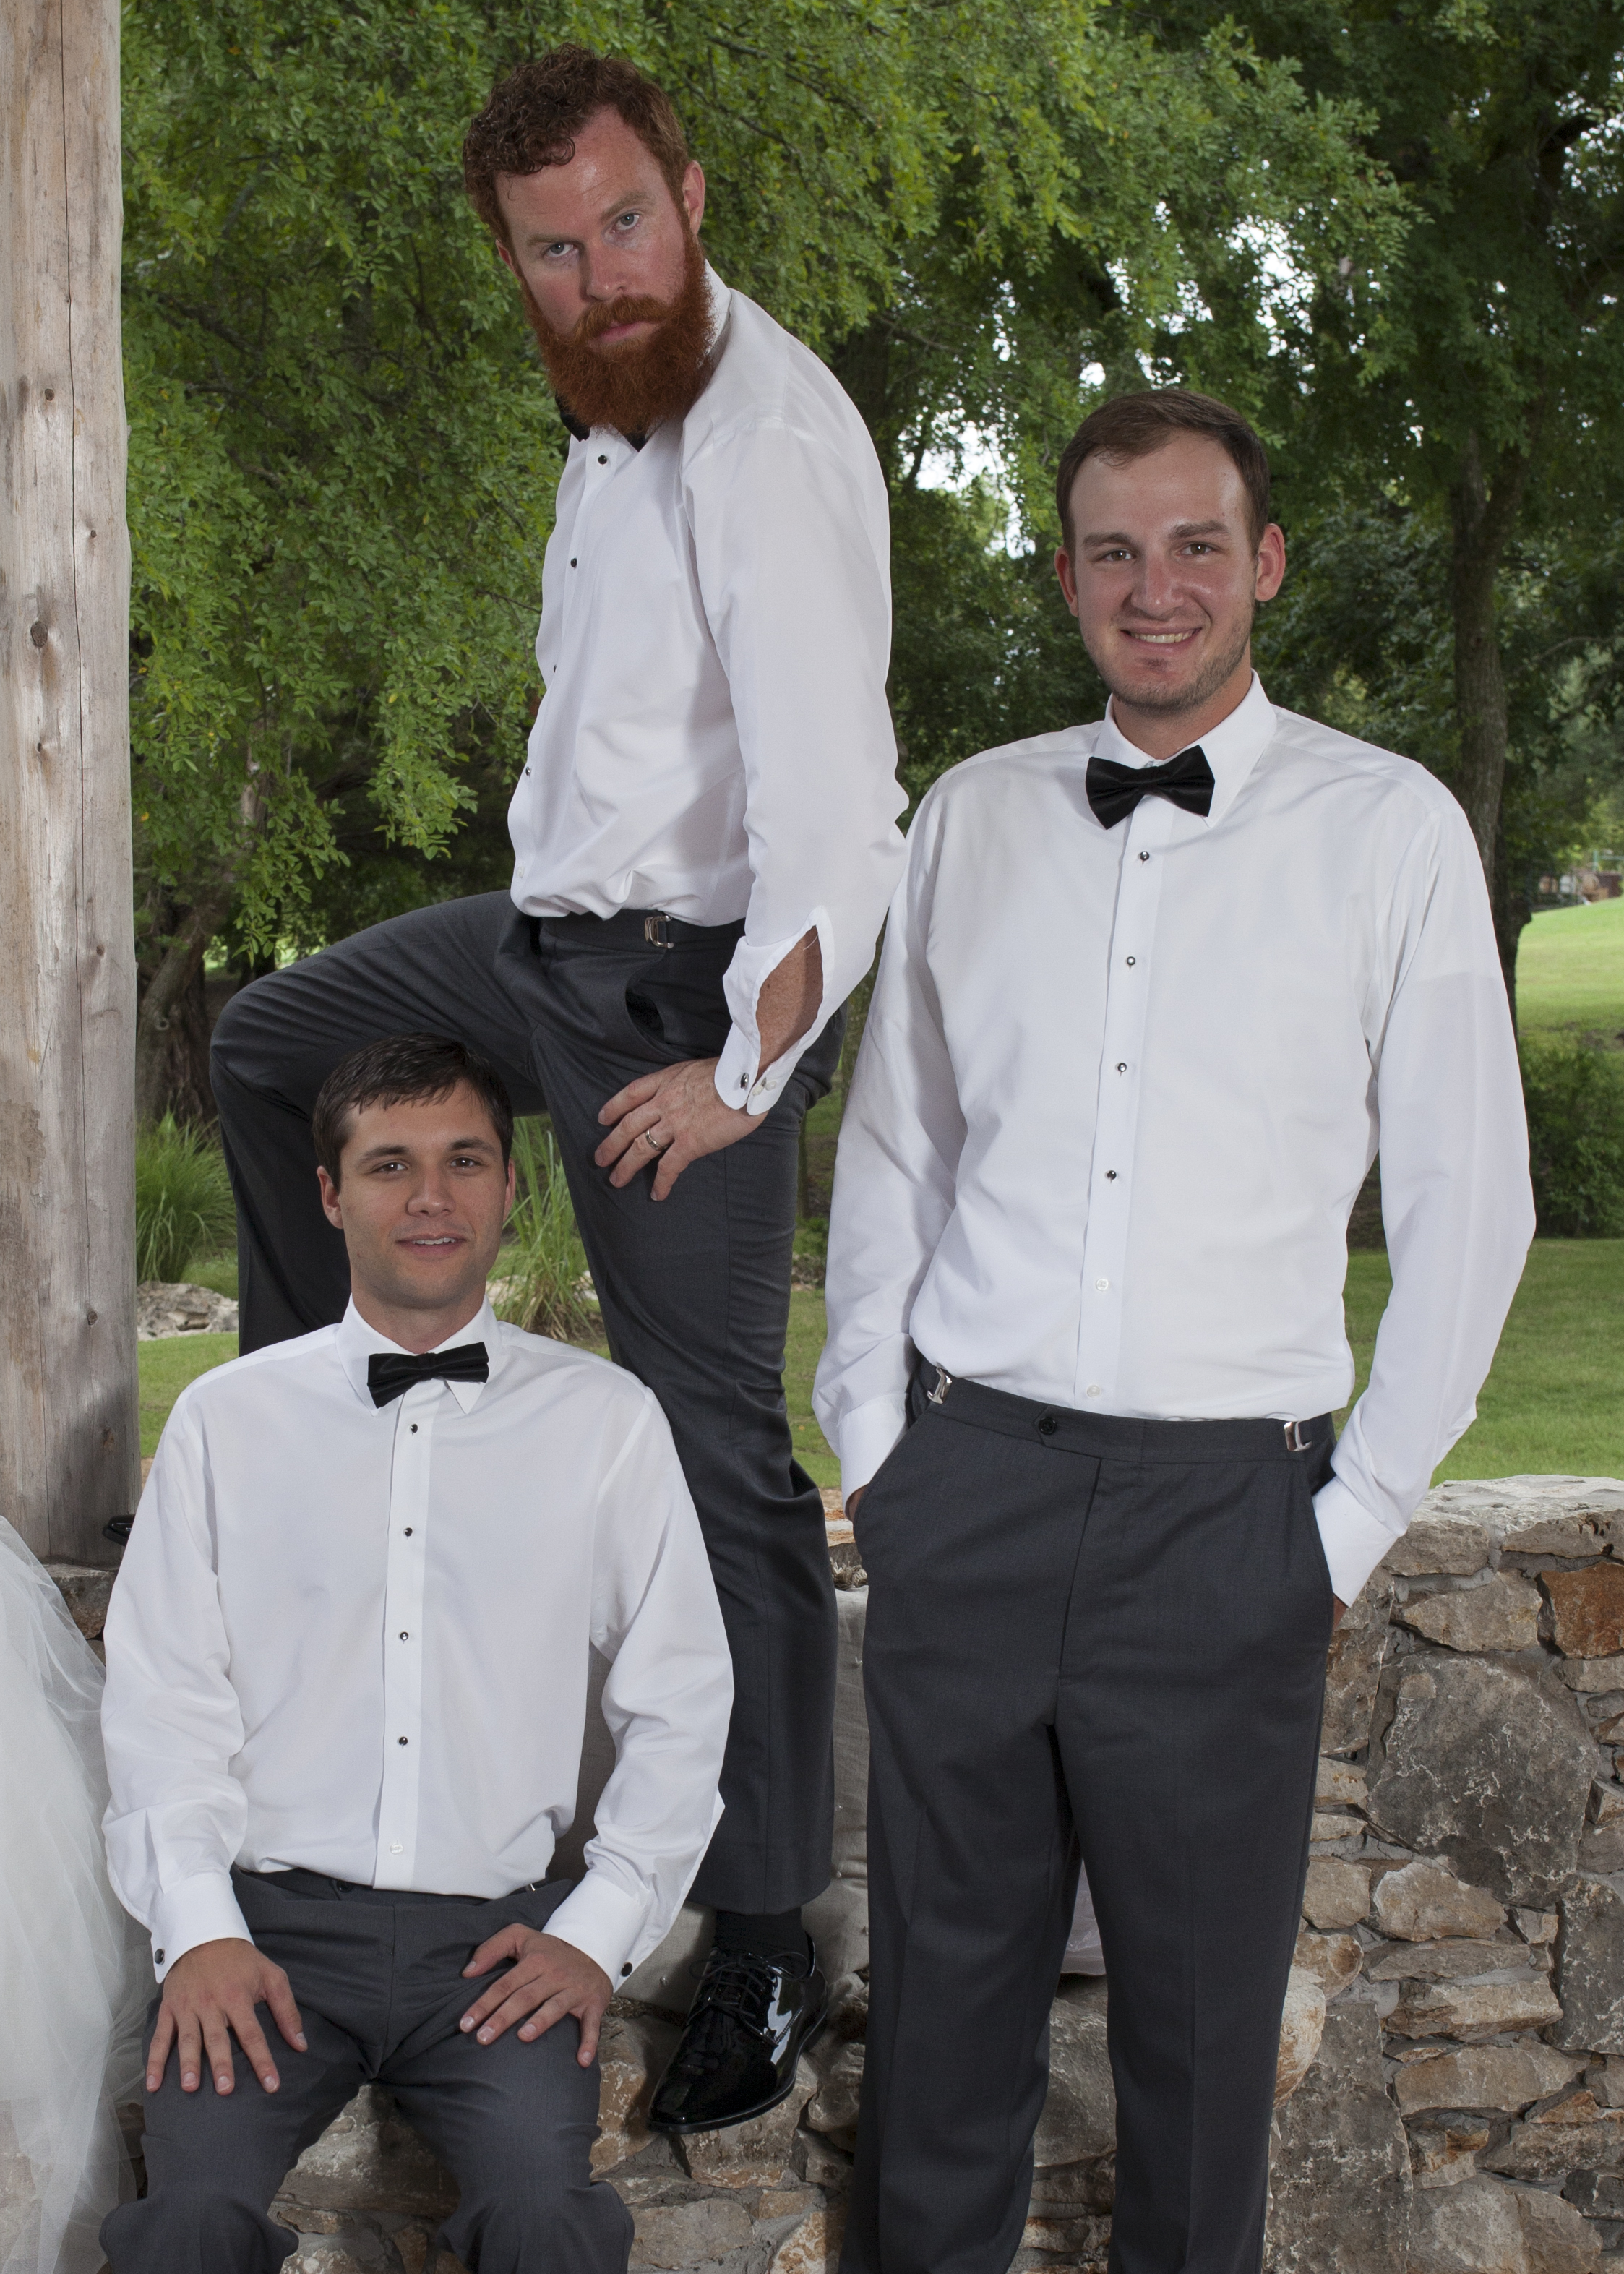 Did I mention silly groomsmen?